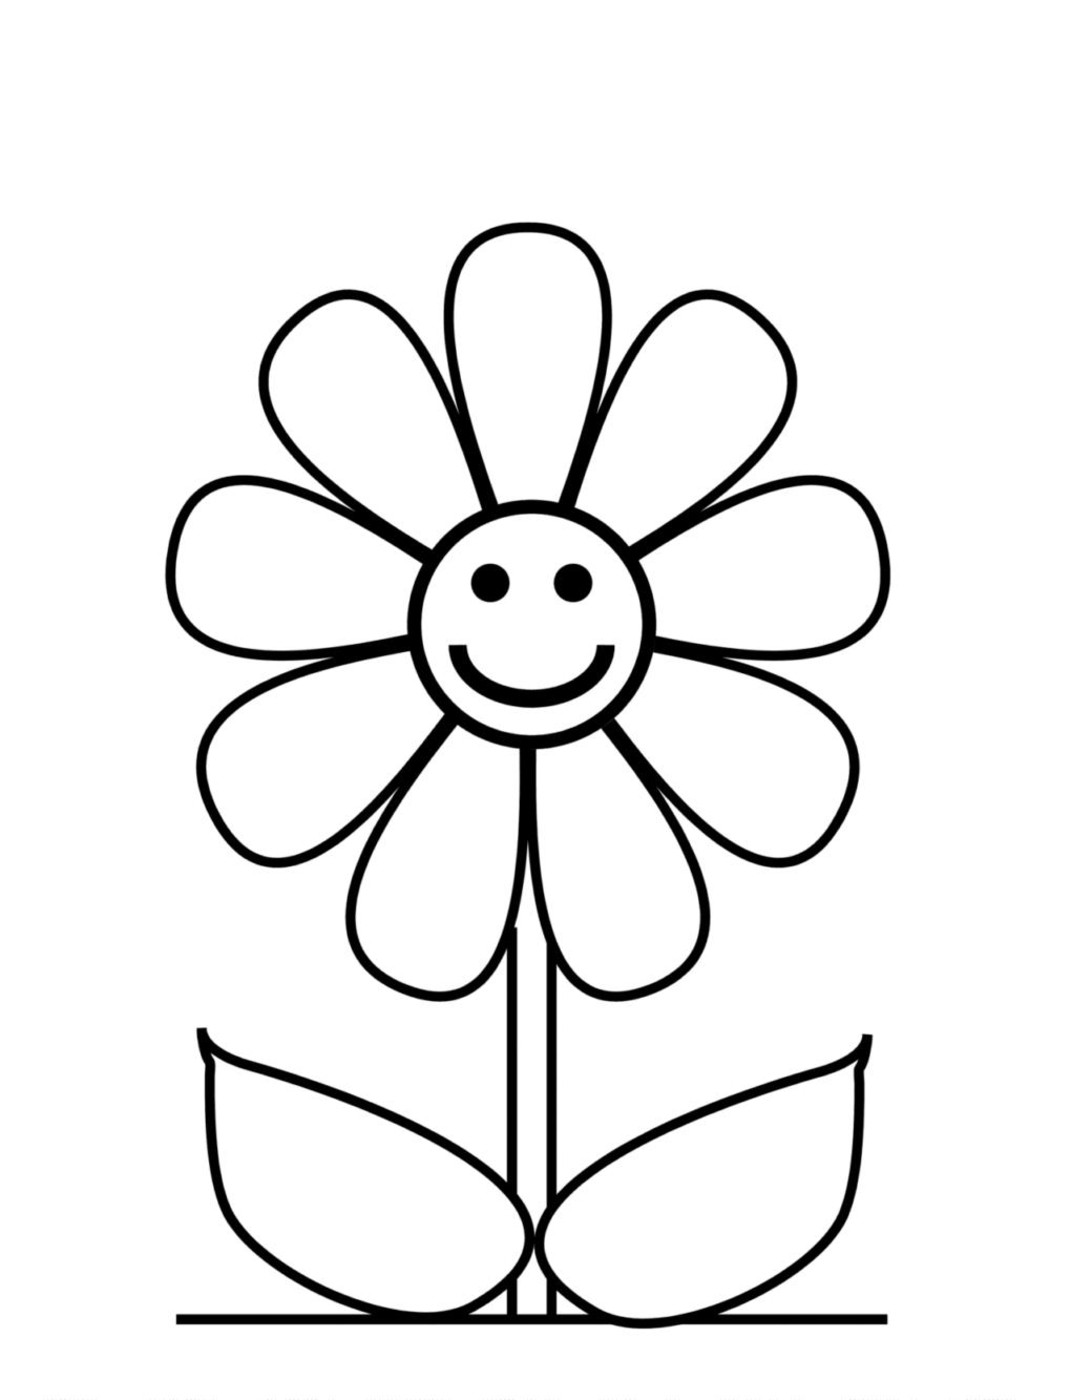 Drawing Pages Of Flowers at GetDrawings.com | Free for personal use ...